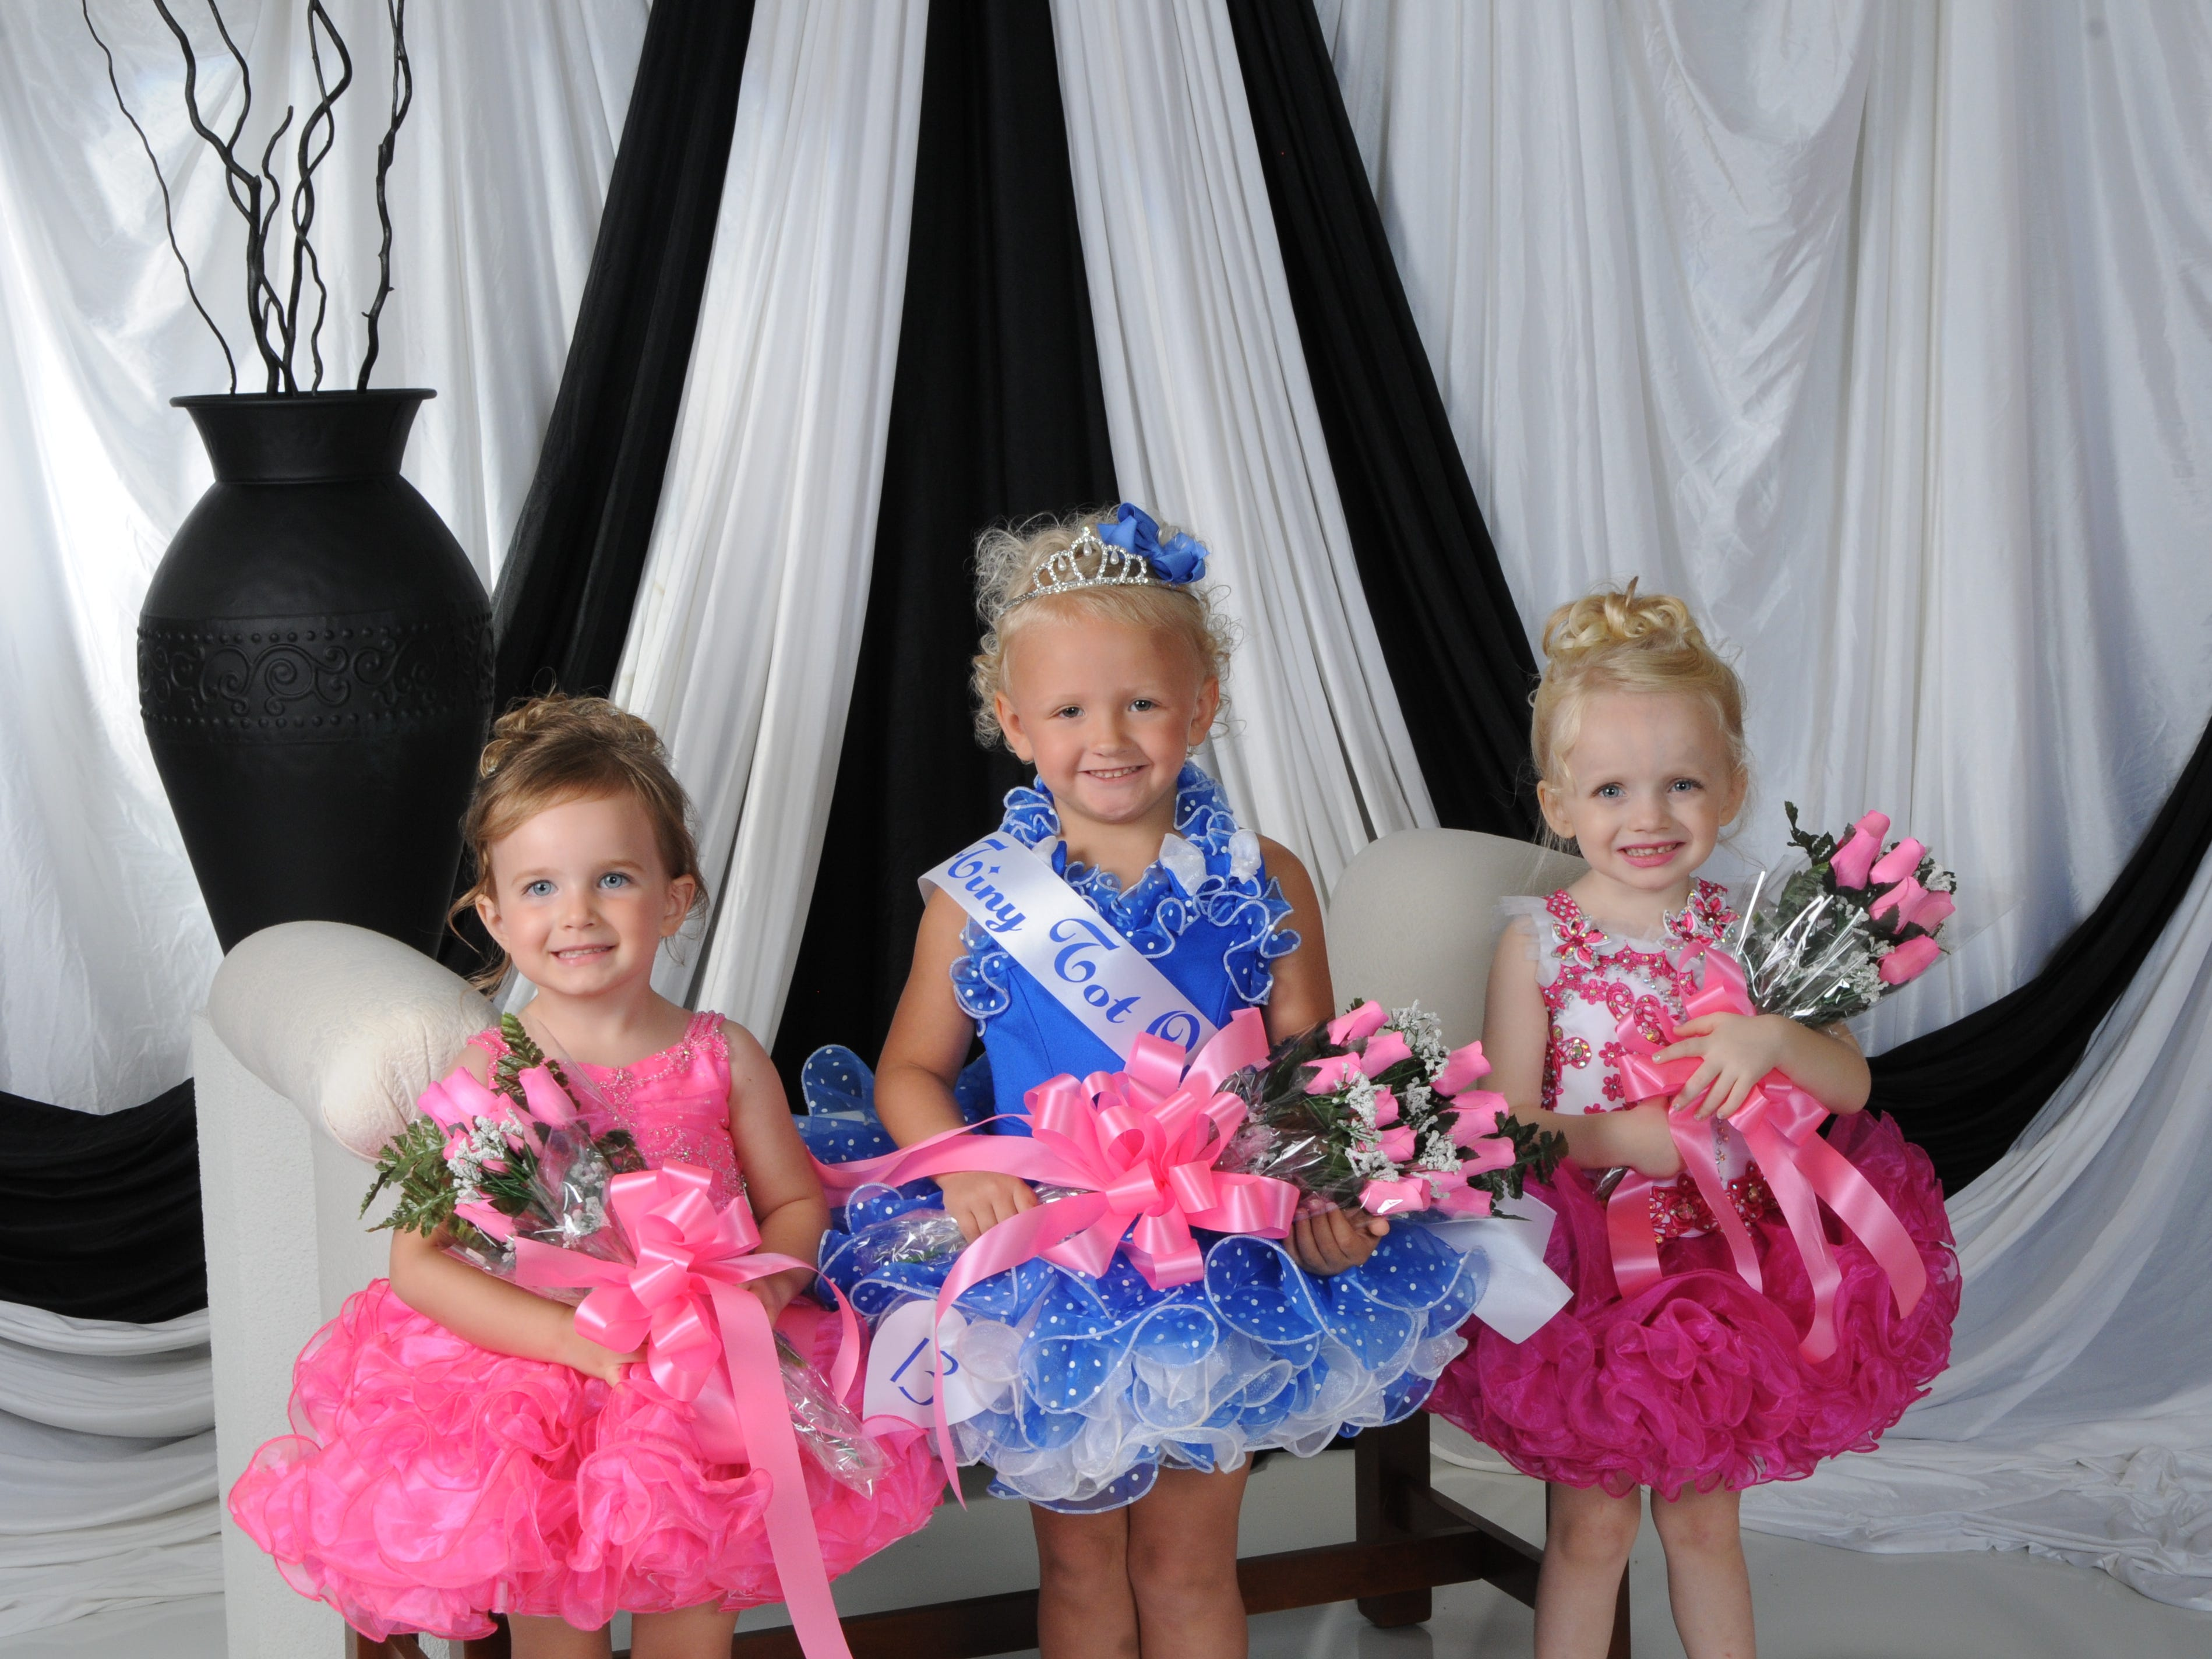 Myla Wheeler (center), daughter of Dusty and Monica Wheeler of Mountain Home, was named Tiny Tot Queen at the annual Baxter County Fair Pageant on Saturday at Dunbar Auditorium. Parker Dewey (right), daughter of Jeremy and Sarah Dewey of Mountain Home, was named first alternate; Abigail Burkhart (left), daughter of Johnnie and Jenny Burkhart of Mountain Home, was named second alternate; and Emerie Rogers (not pictured), daughter of Matt and Ashley Rogers of Mountain Home, was the People's Choice winner.